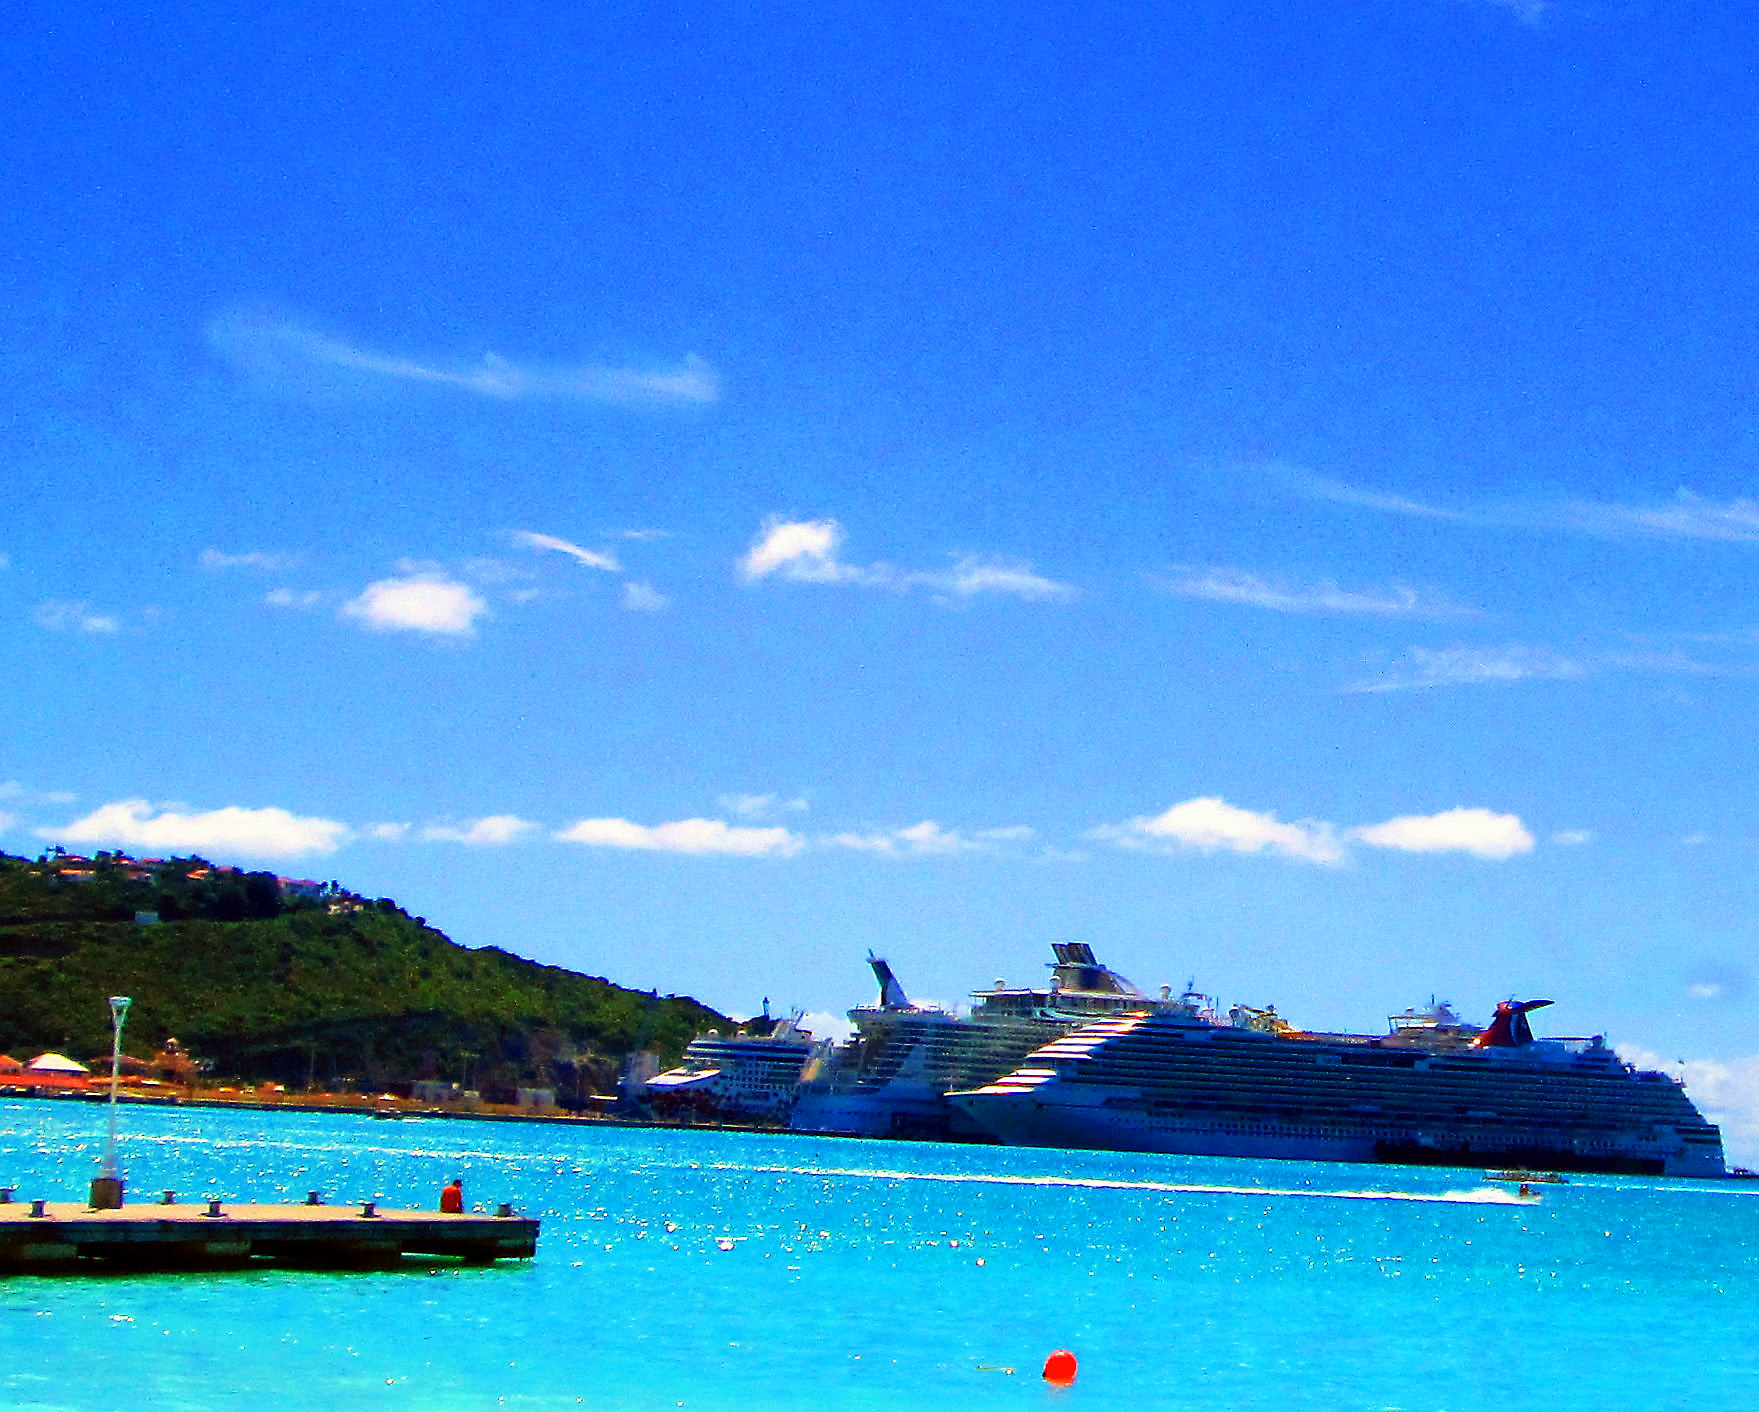 Cruise Ships Docked In A Caribbean Port